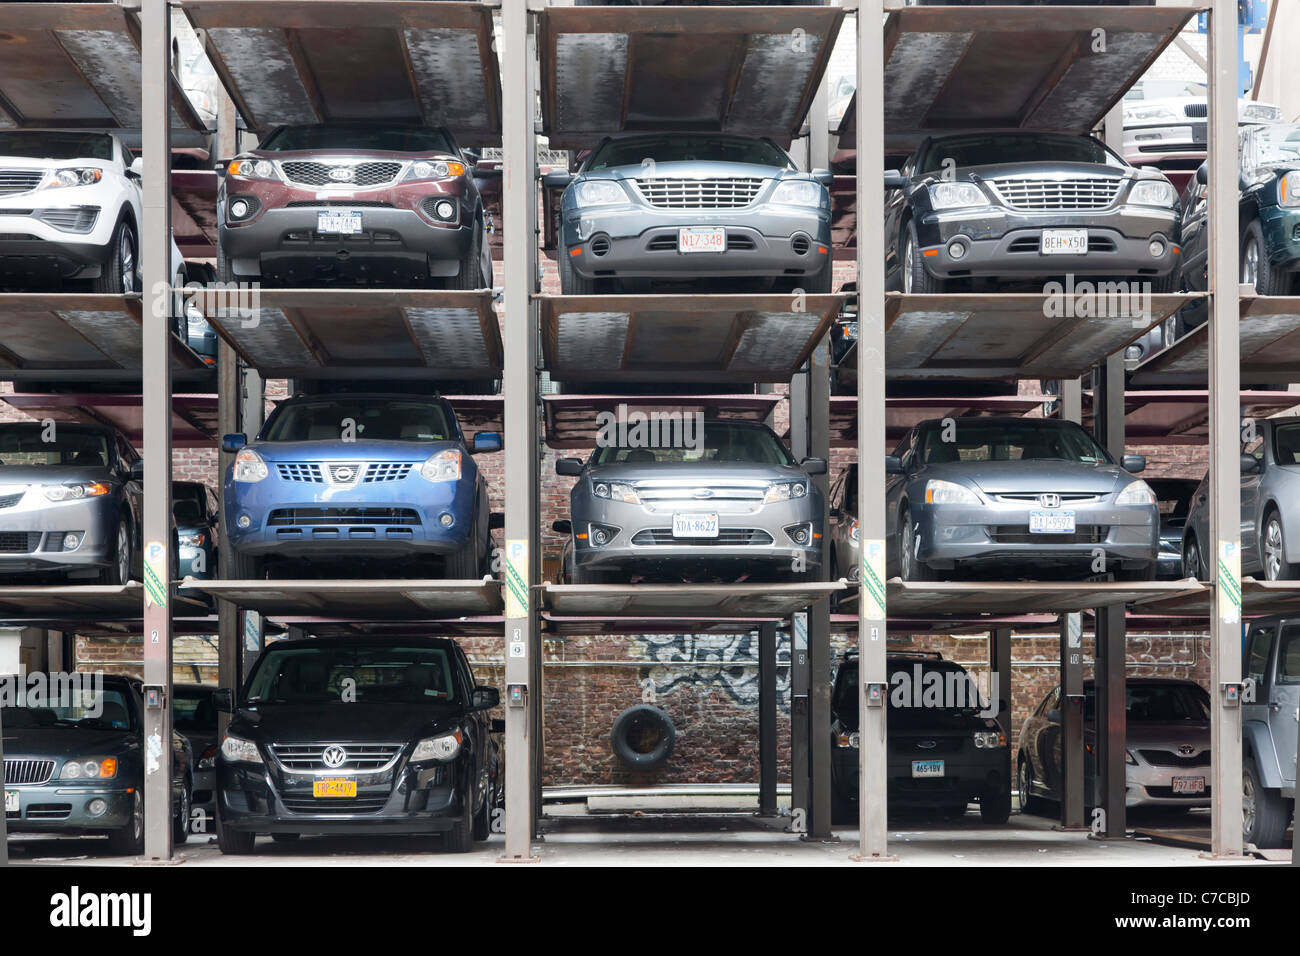 Cars parked in vertical hydraulic parking spaces in a parking lot in New York City. - Stock Image